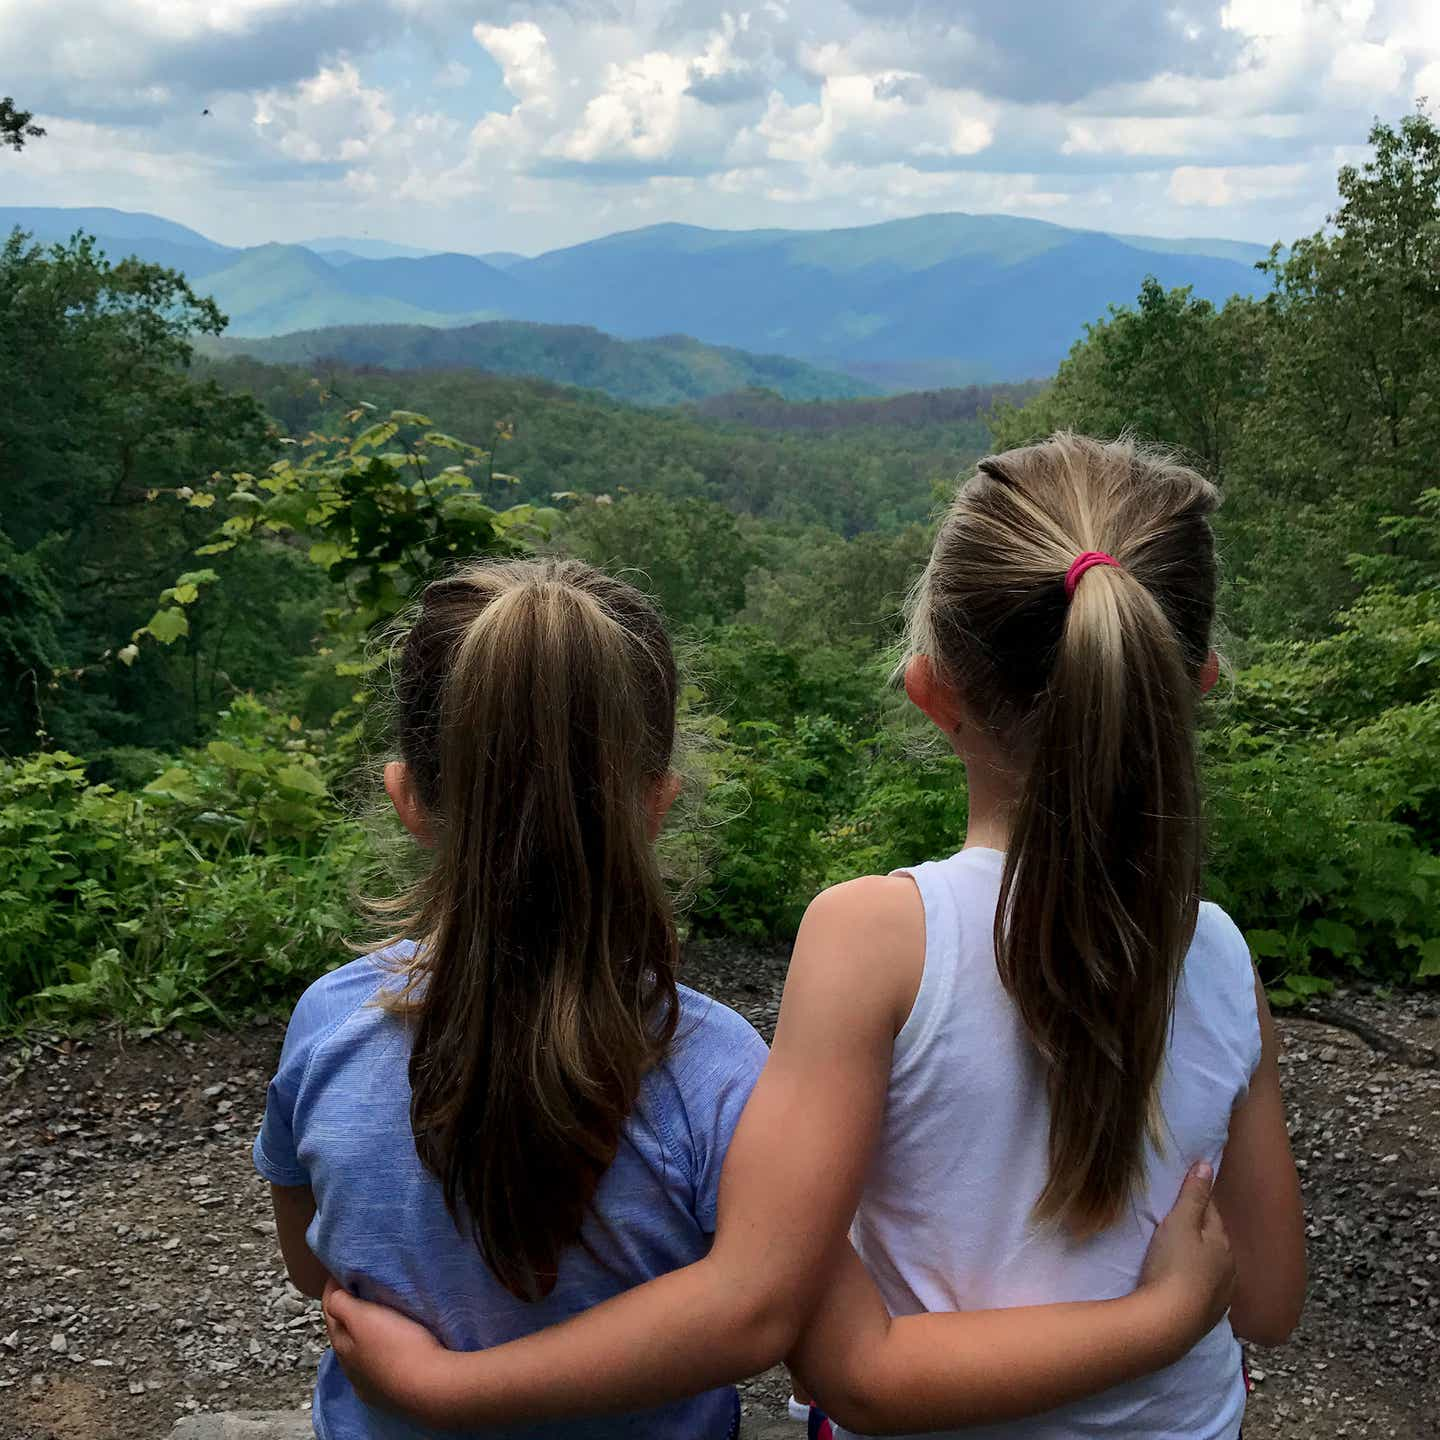 Author, Chris Johnstons' daughters, Kyndall (right), and Kyler (left) face out to the trees of the Great Smoky Mountains while wrapping one arm around each other.